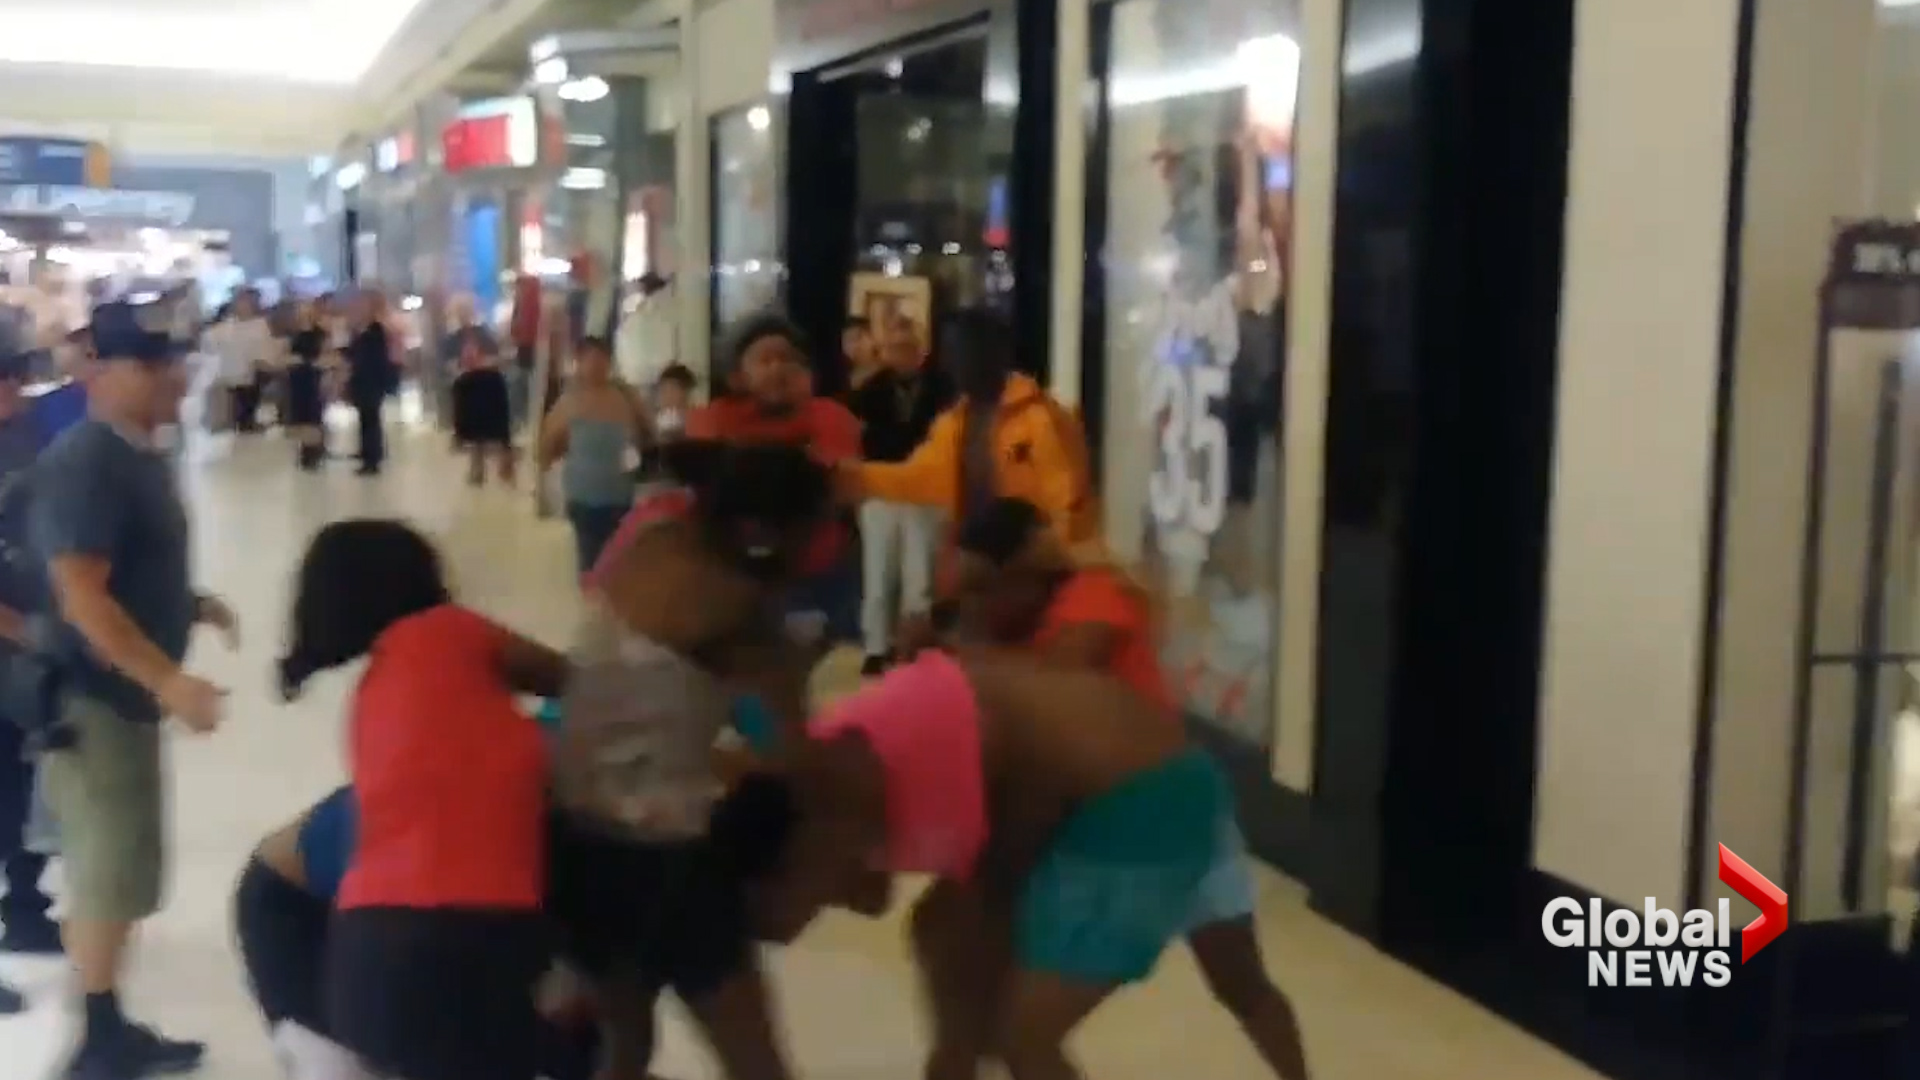 Watch a wild mall brawl that involved six women